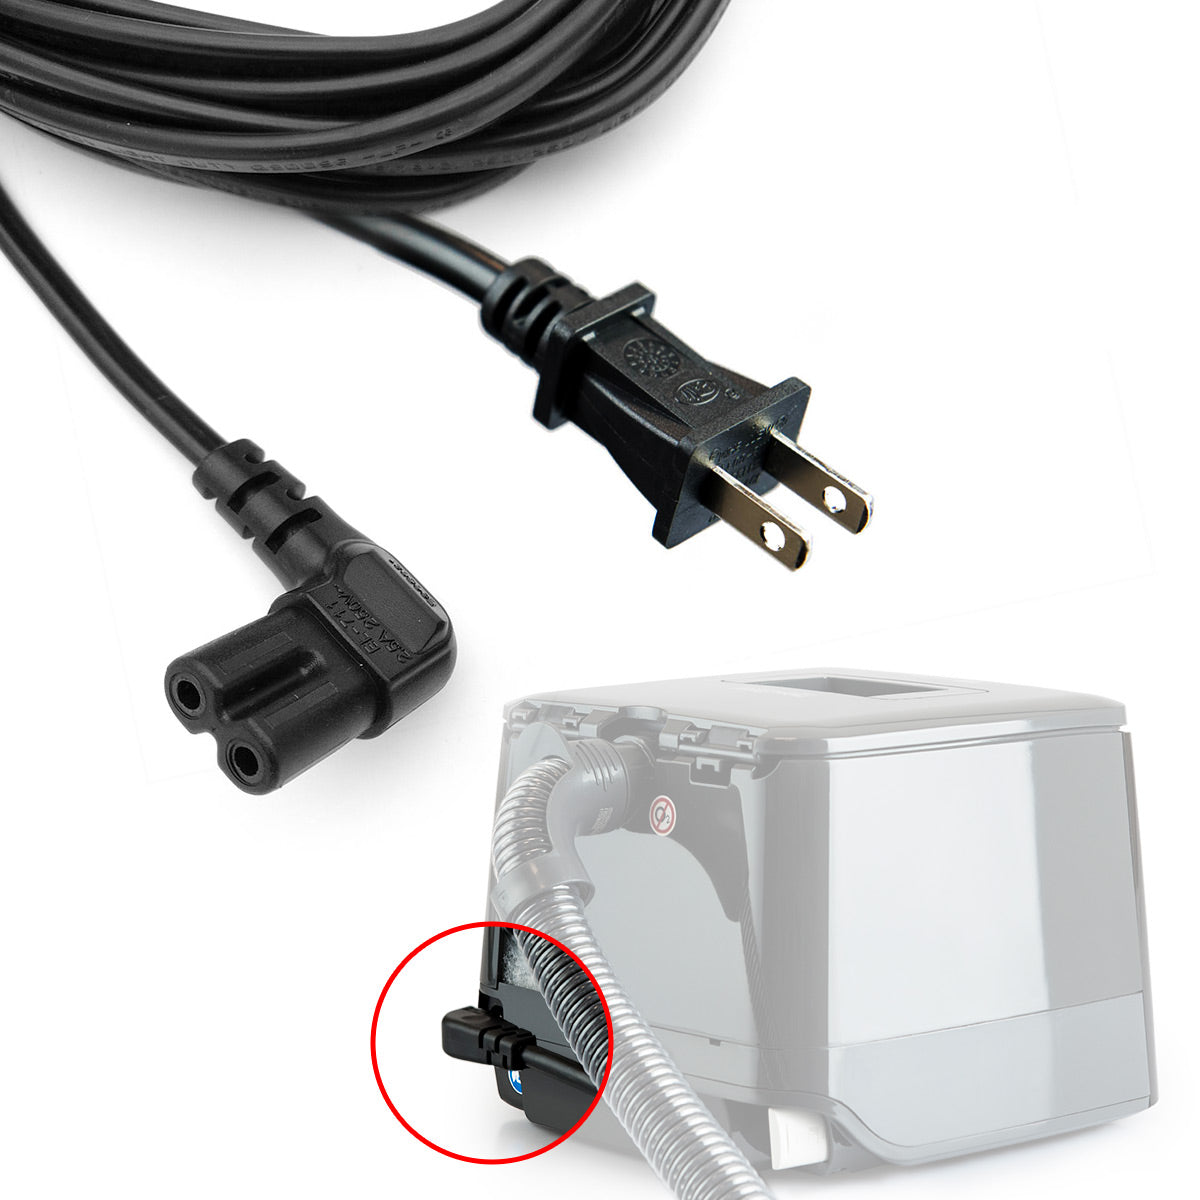 F&P SleepStyle AC Power Supply Cord